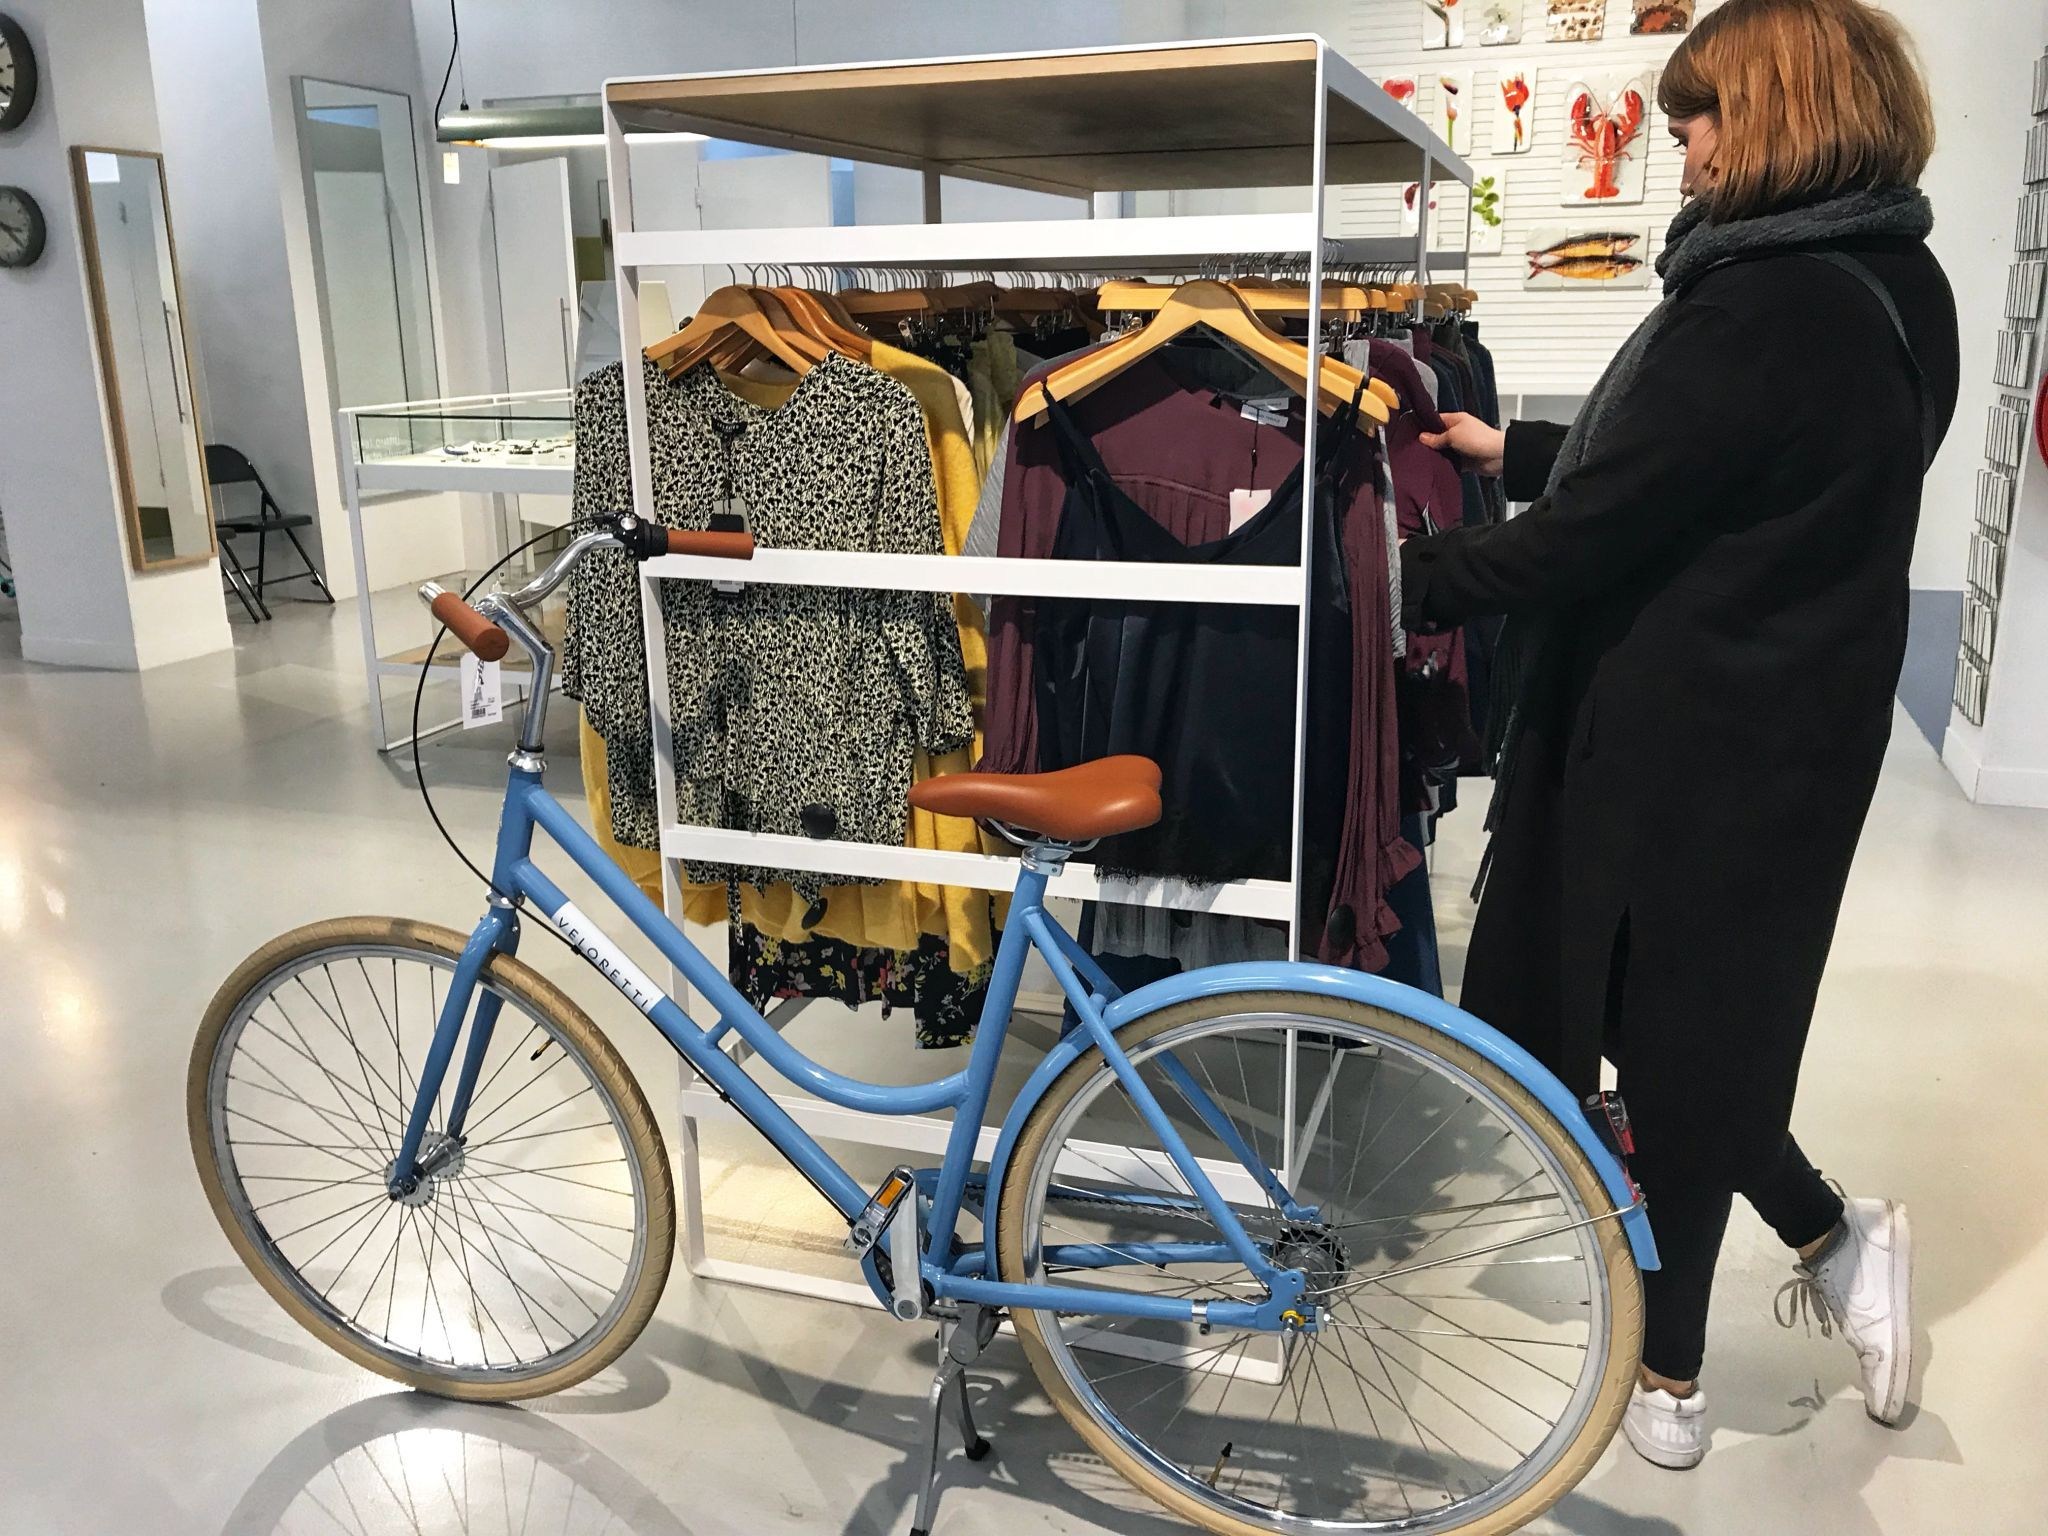 Boutique shopping with bikes at Eindhoven